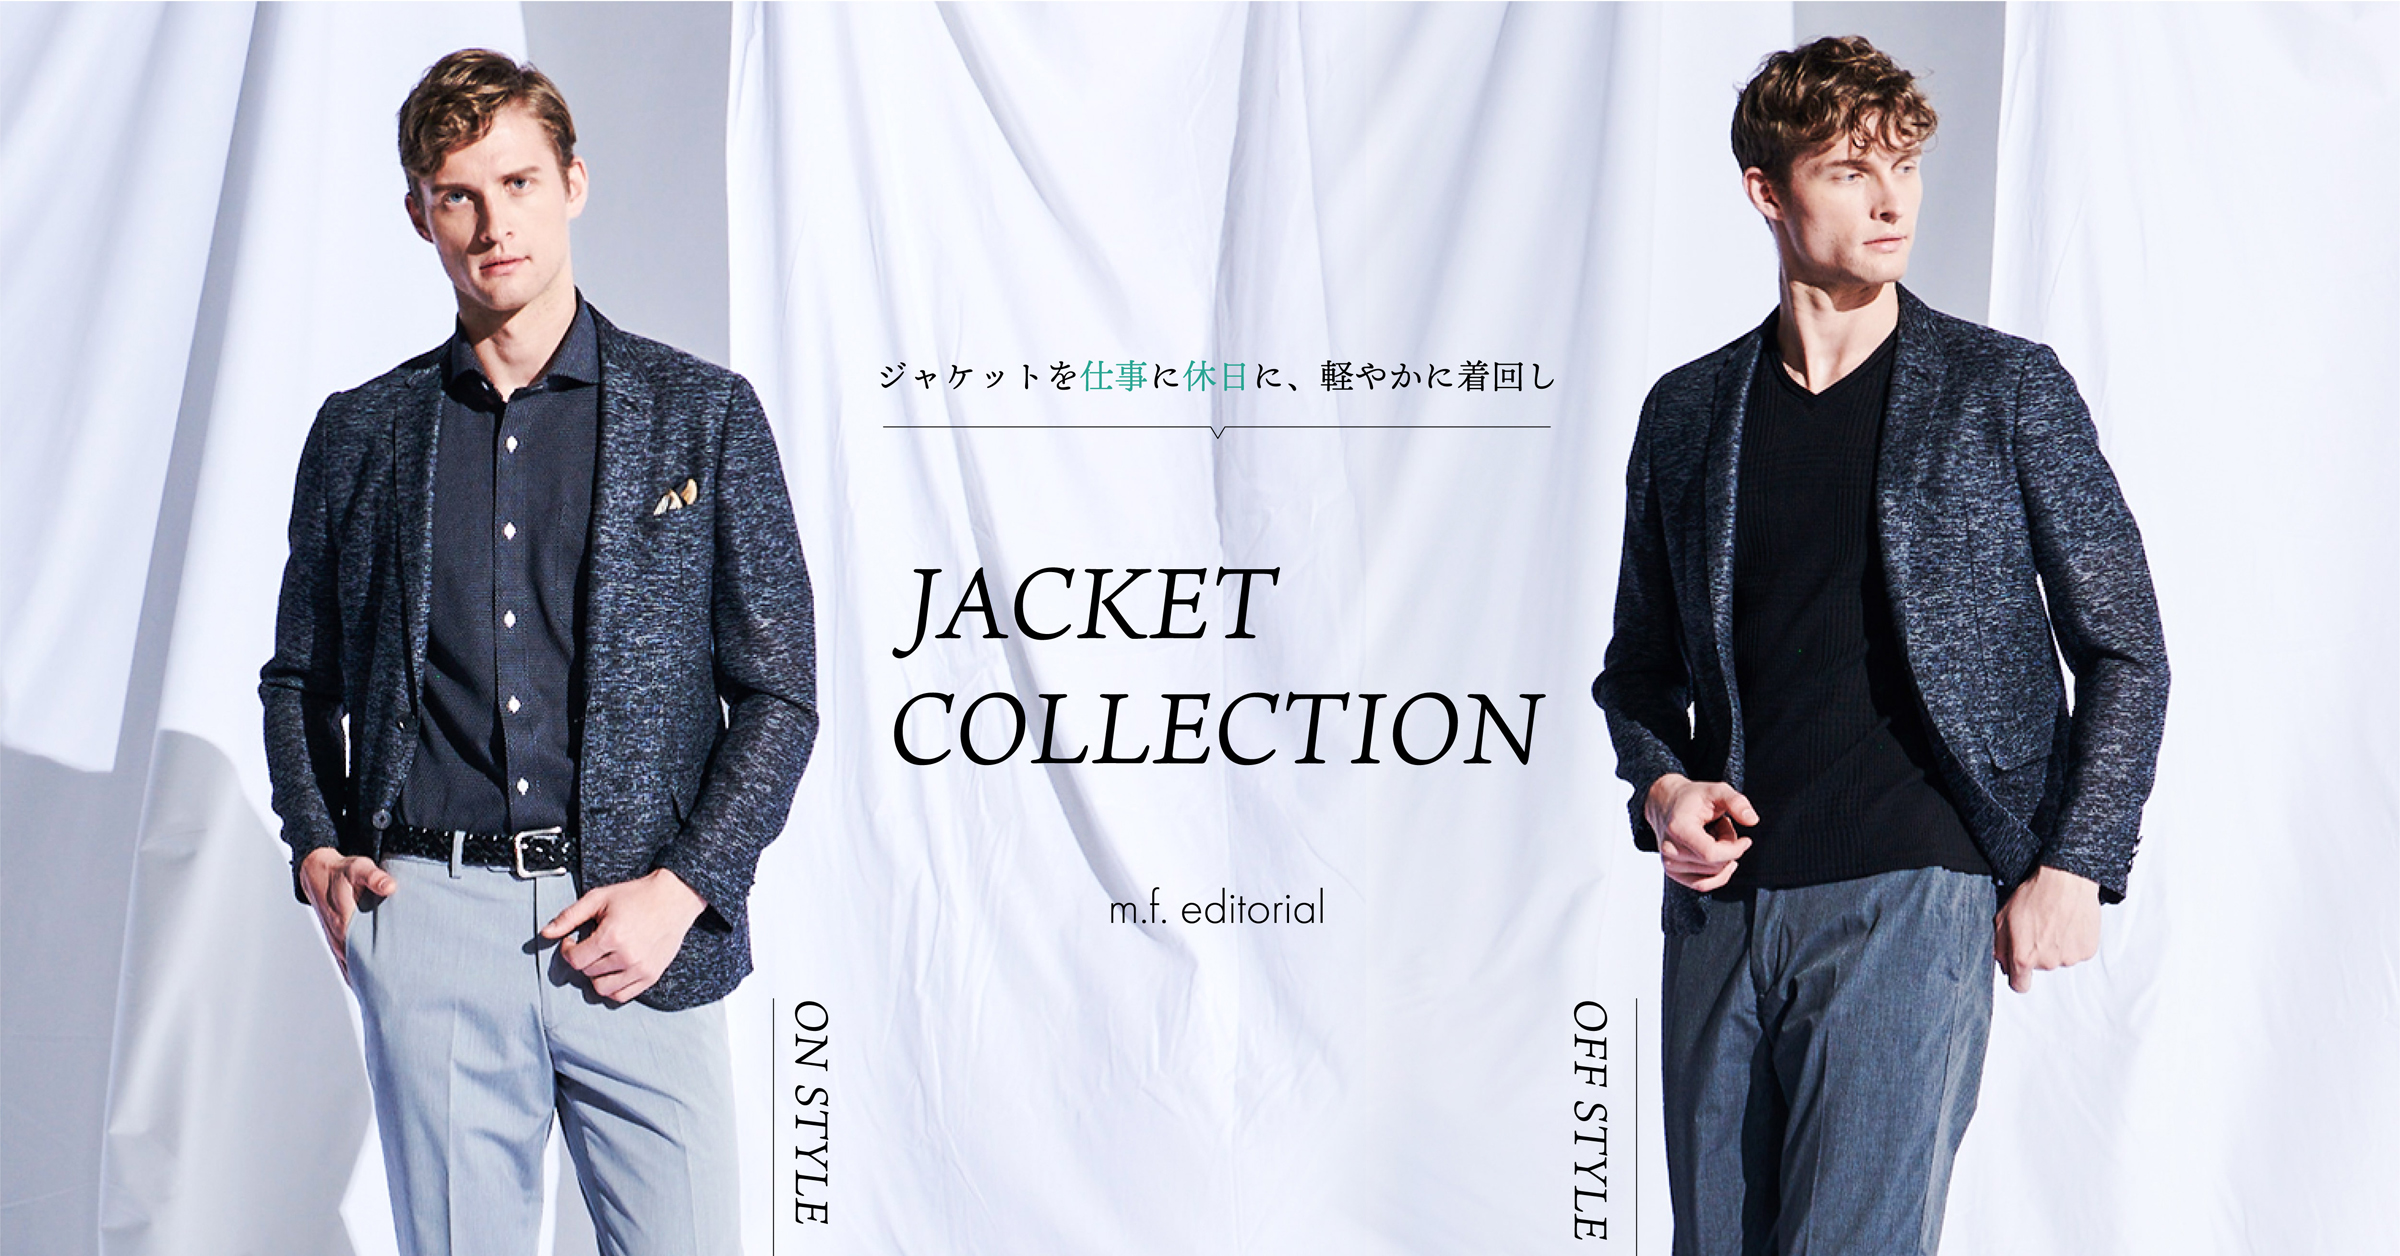 m.f editorial MEN'S JACKET COLLECTION